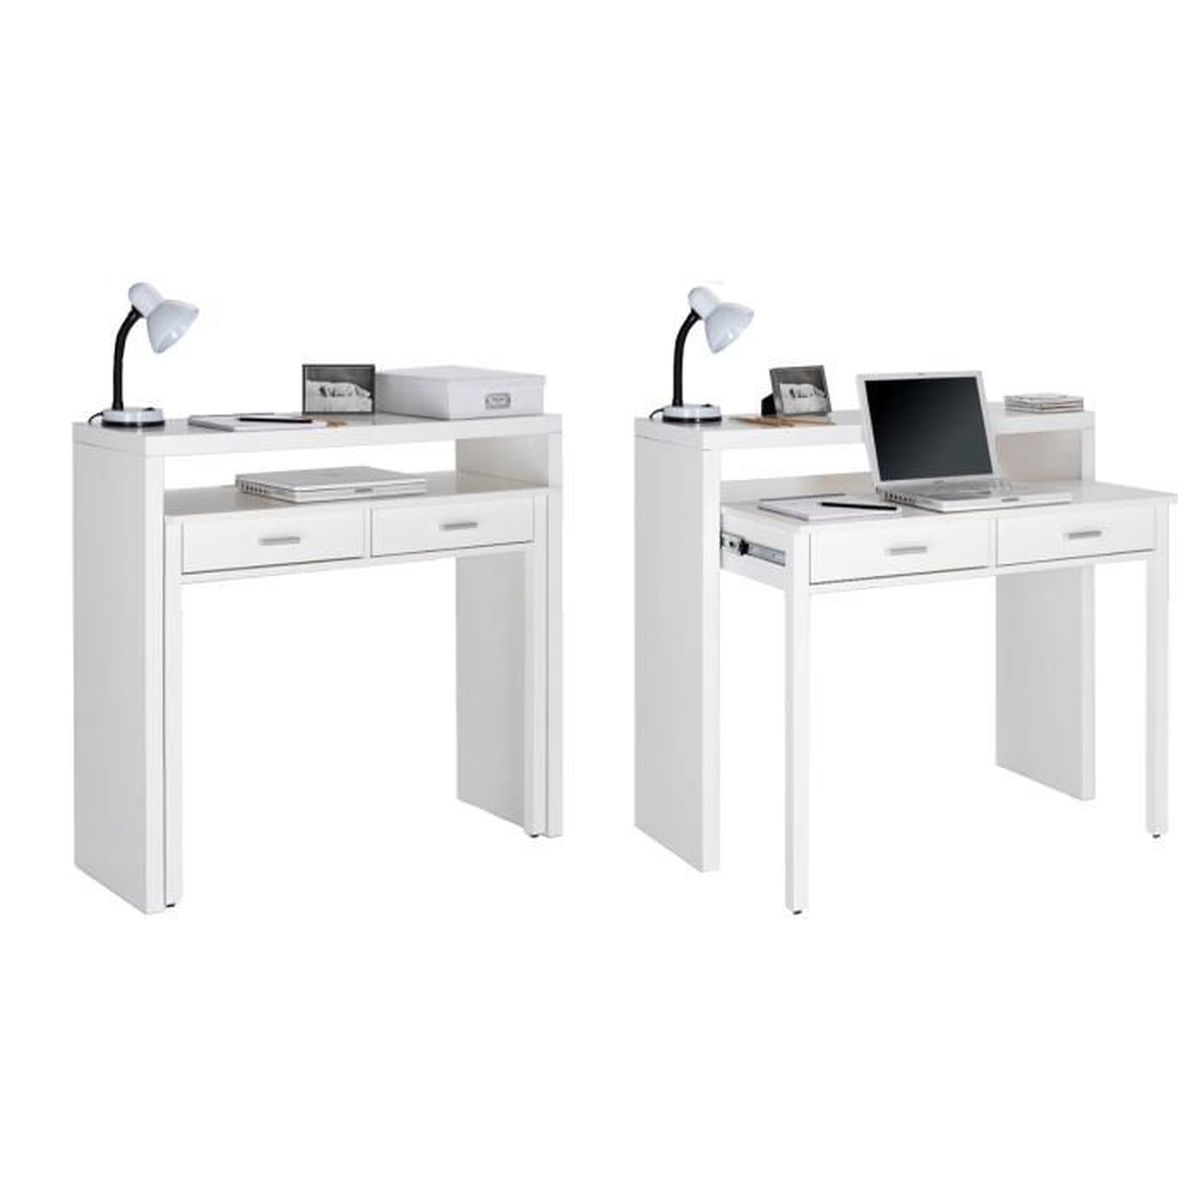 table bureau extensible console bureau couleur blanc brillant dimensions 98 6x86 9x36 70. Black Bedroom Furniture Sets. Home Design Ideas